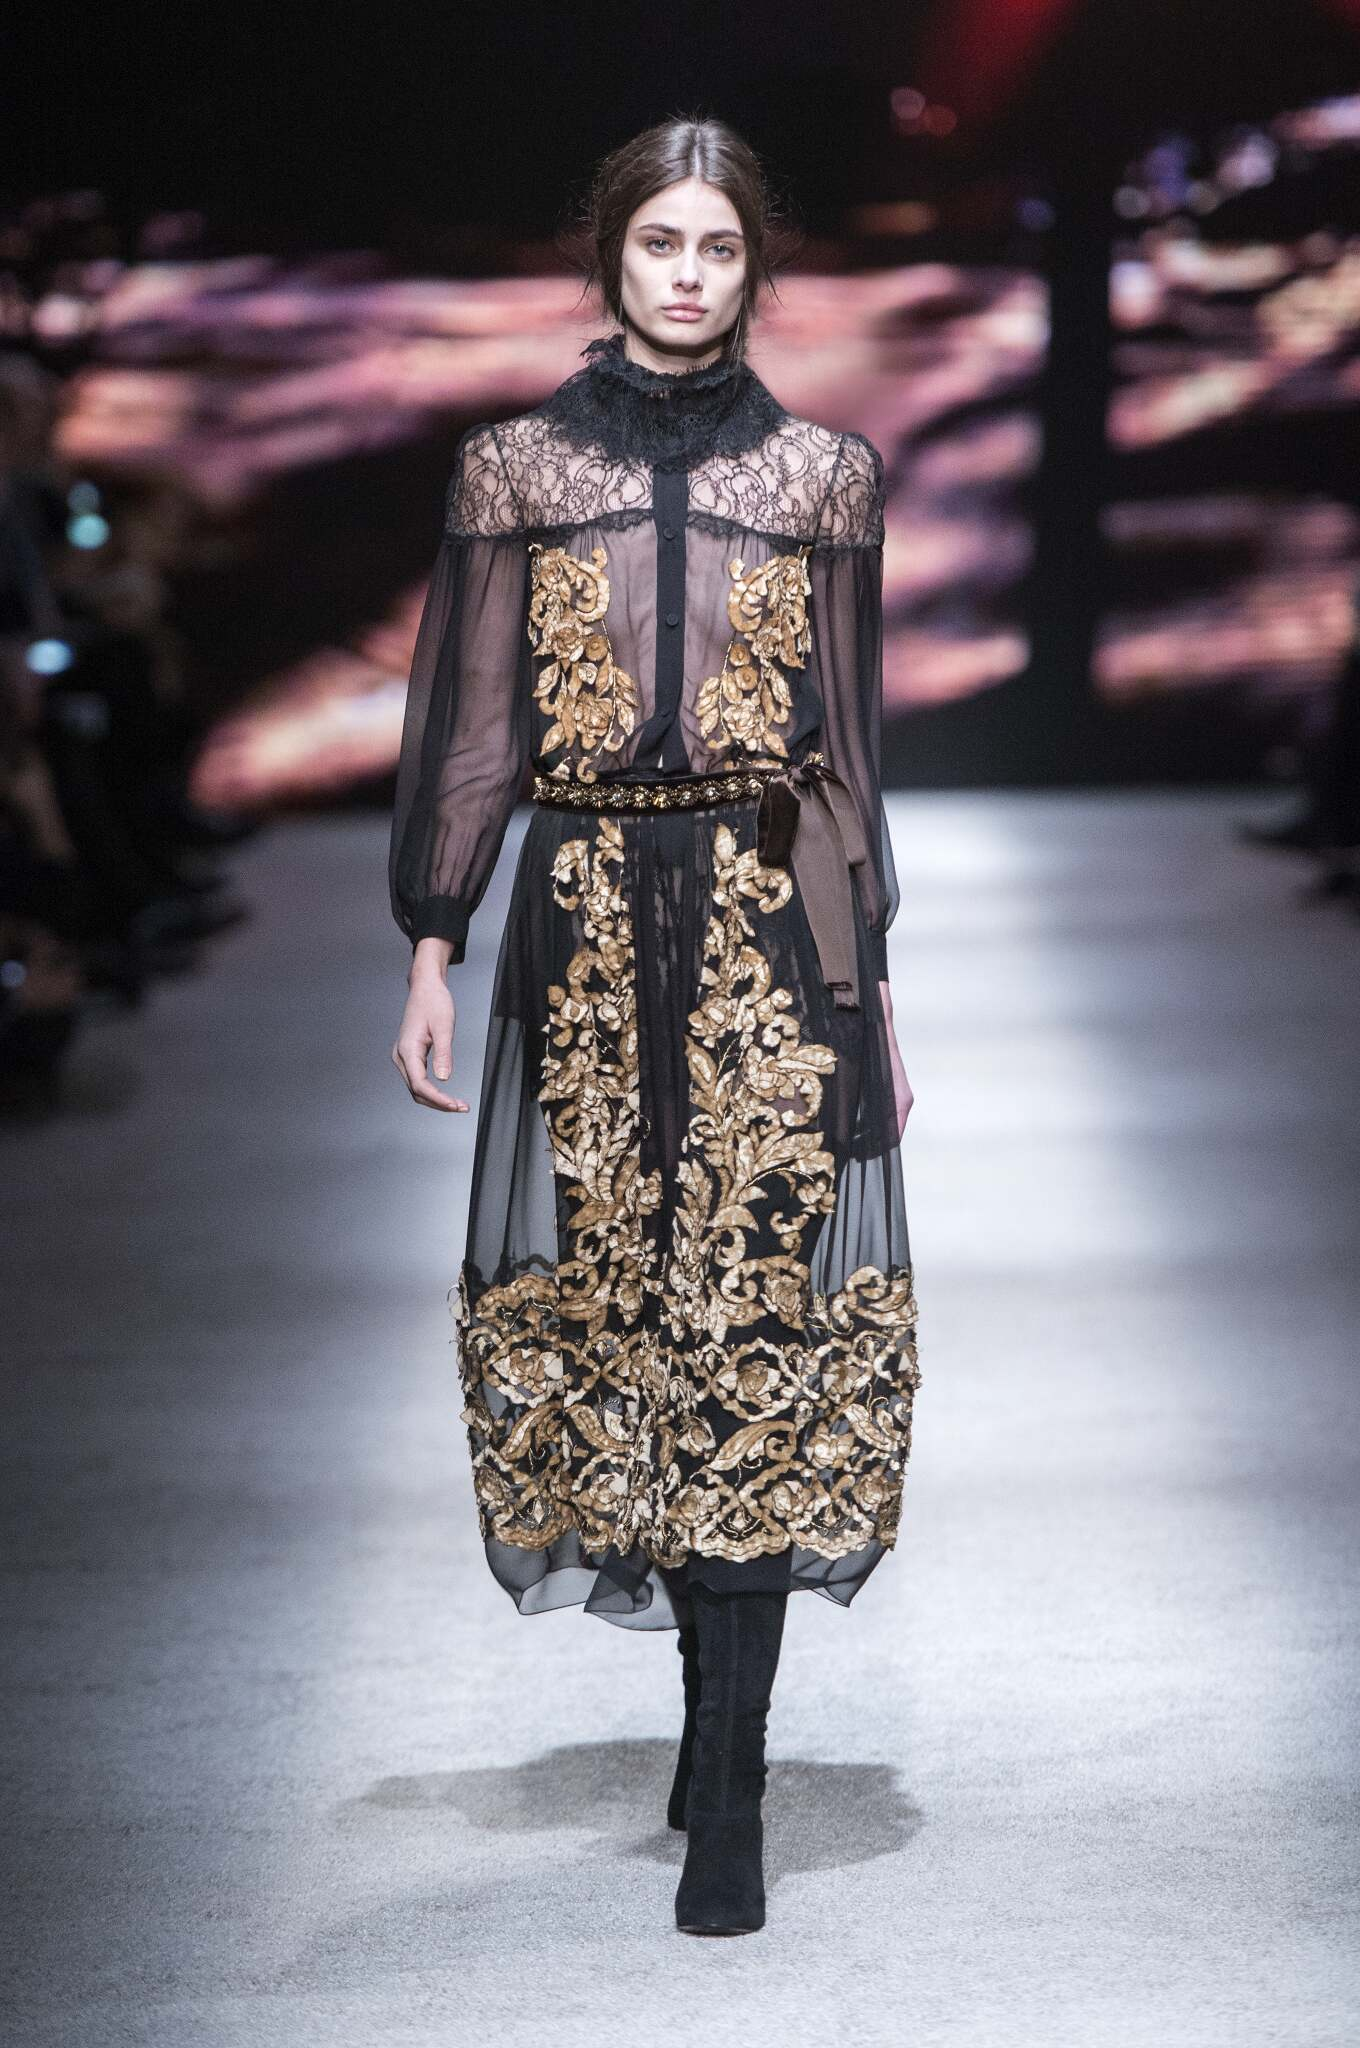 Alberta Ferretti Collection Winter 2015 Catwalk